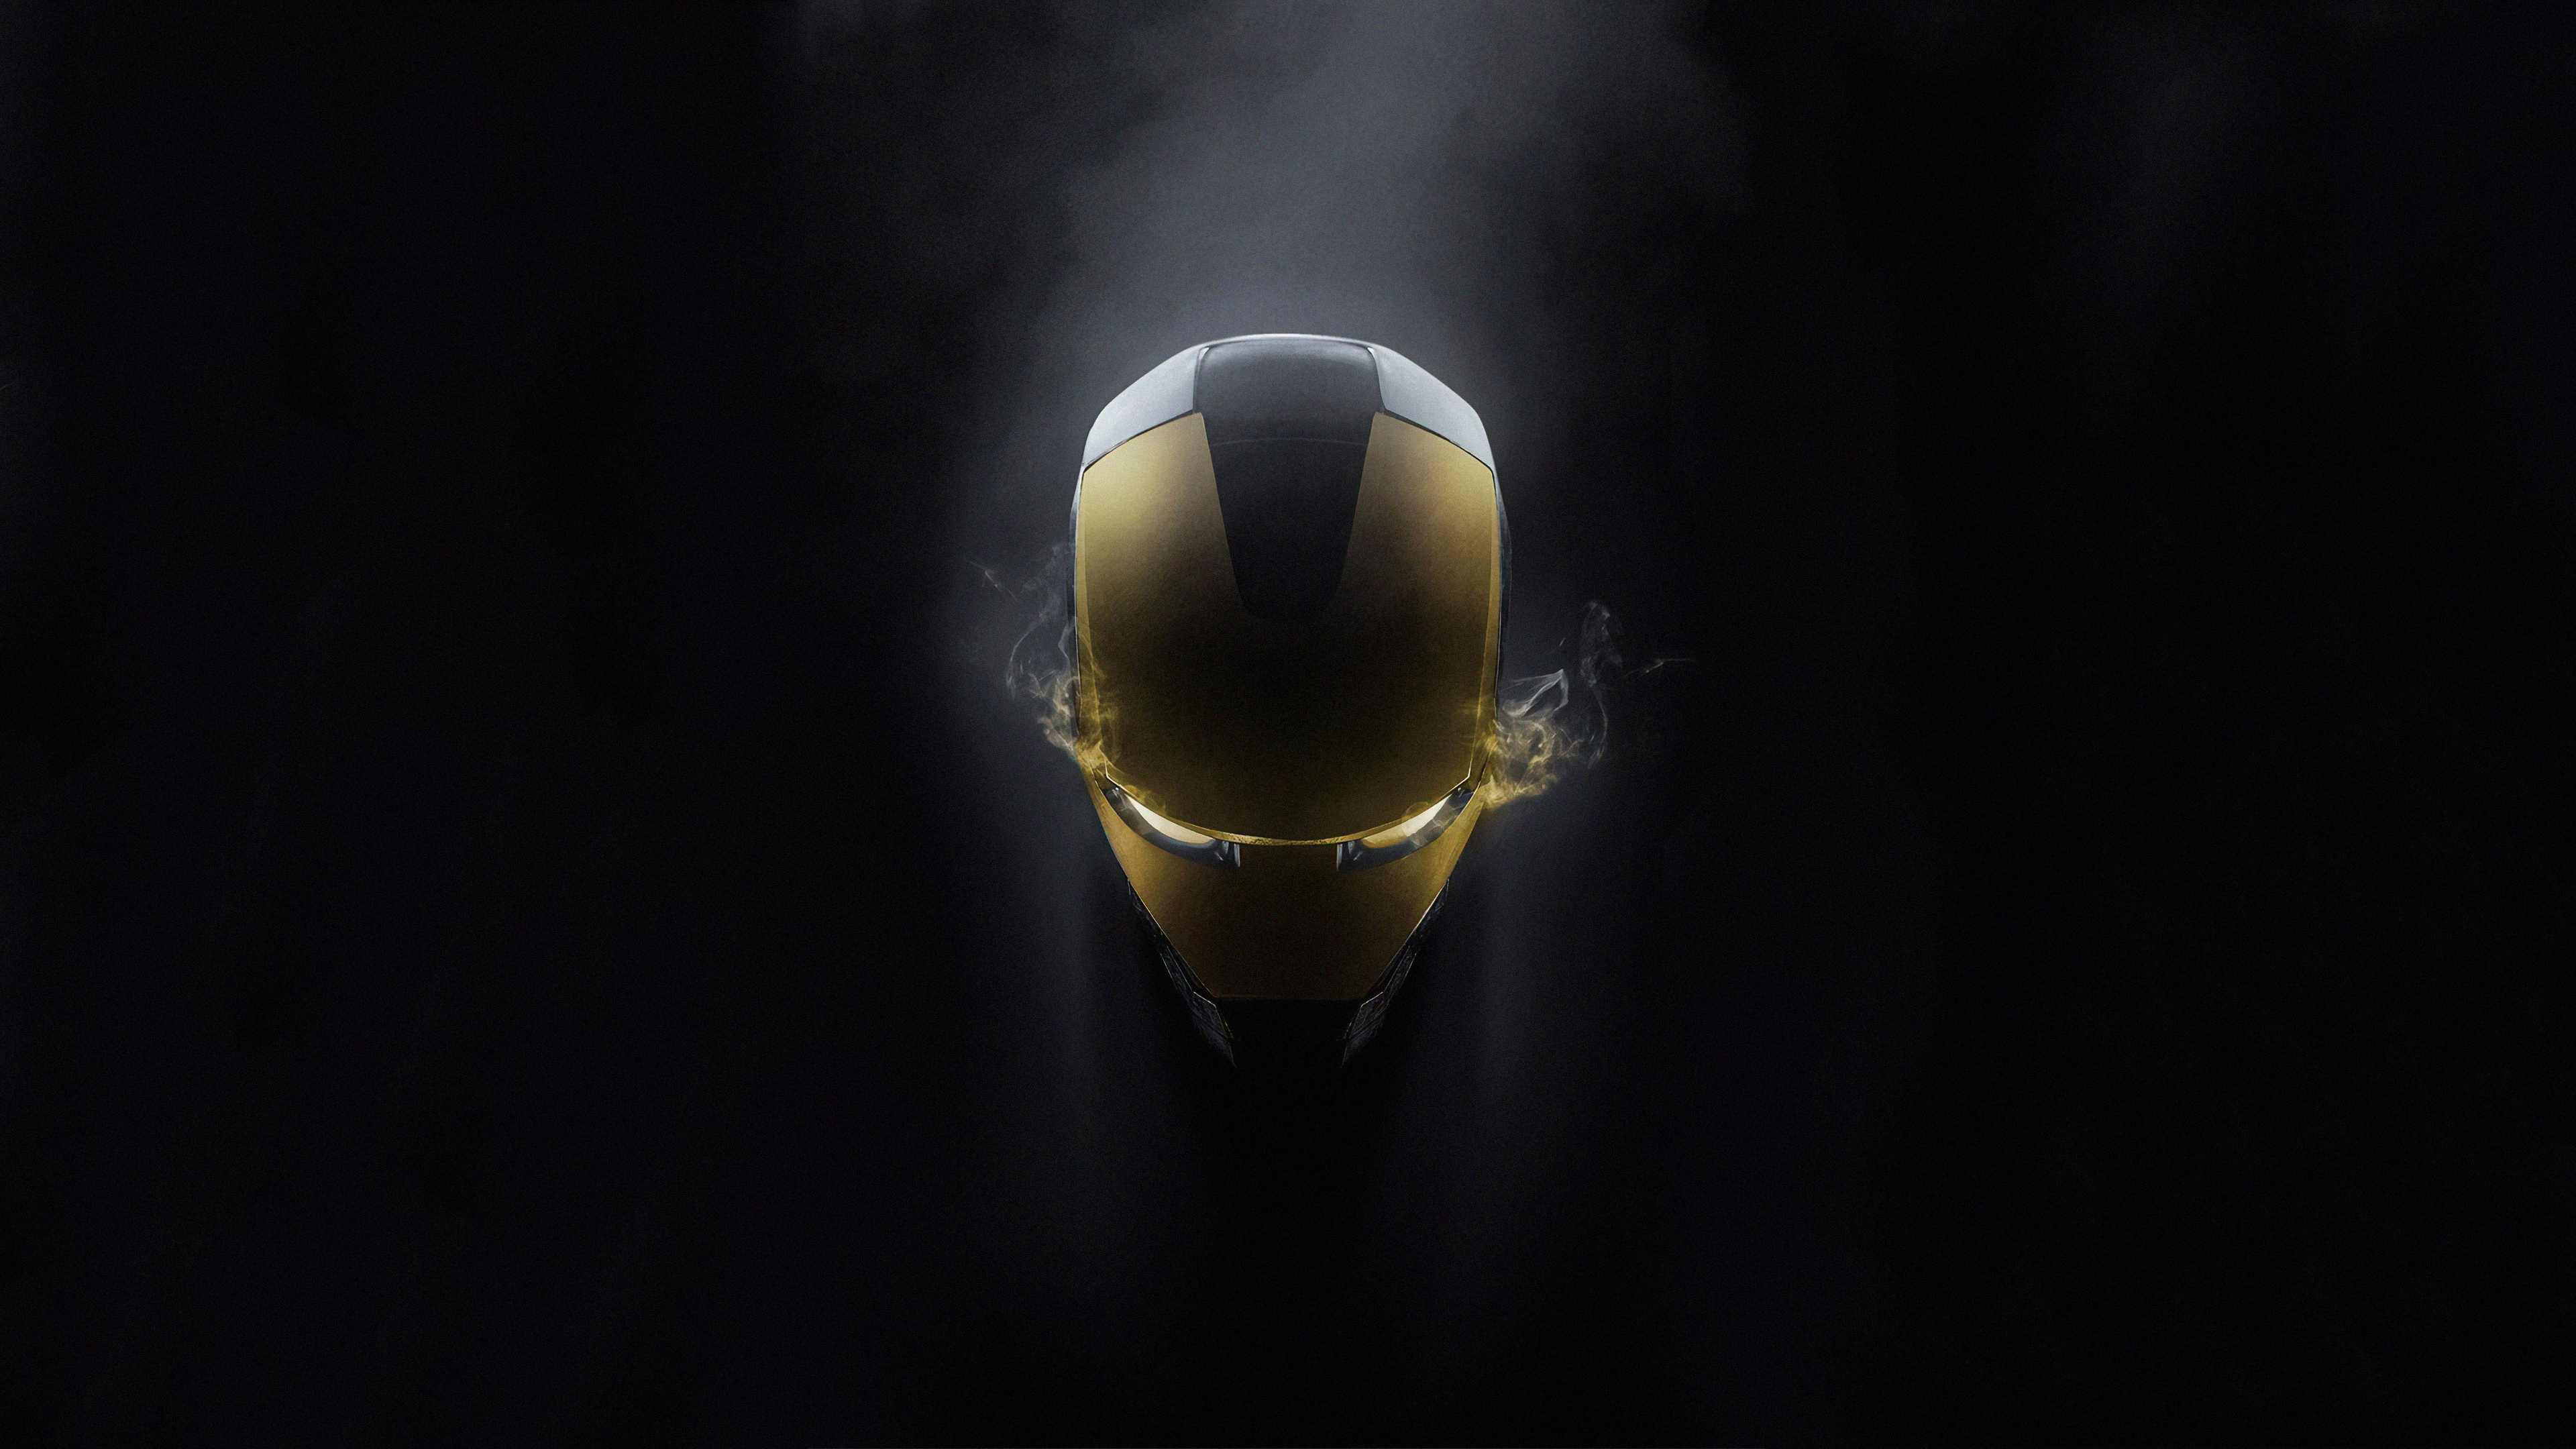 iron man glowing mask 1570394805 - Iron Man Glowing Mask - superheroes wallpapers, iron man wallpapers, hd-wallpapers, 4k-wallpapers